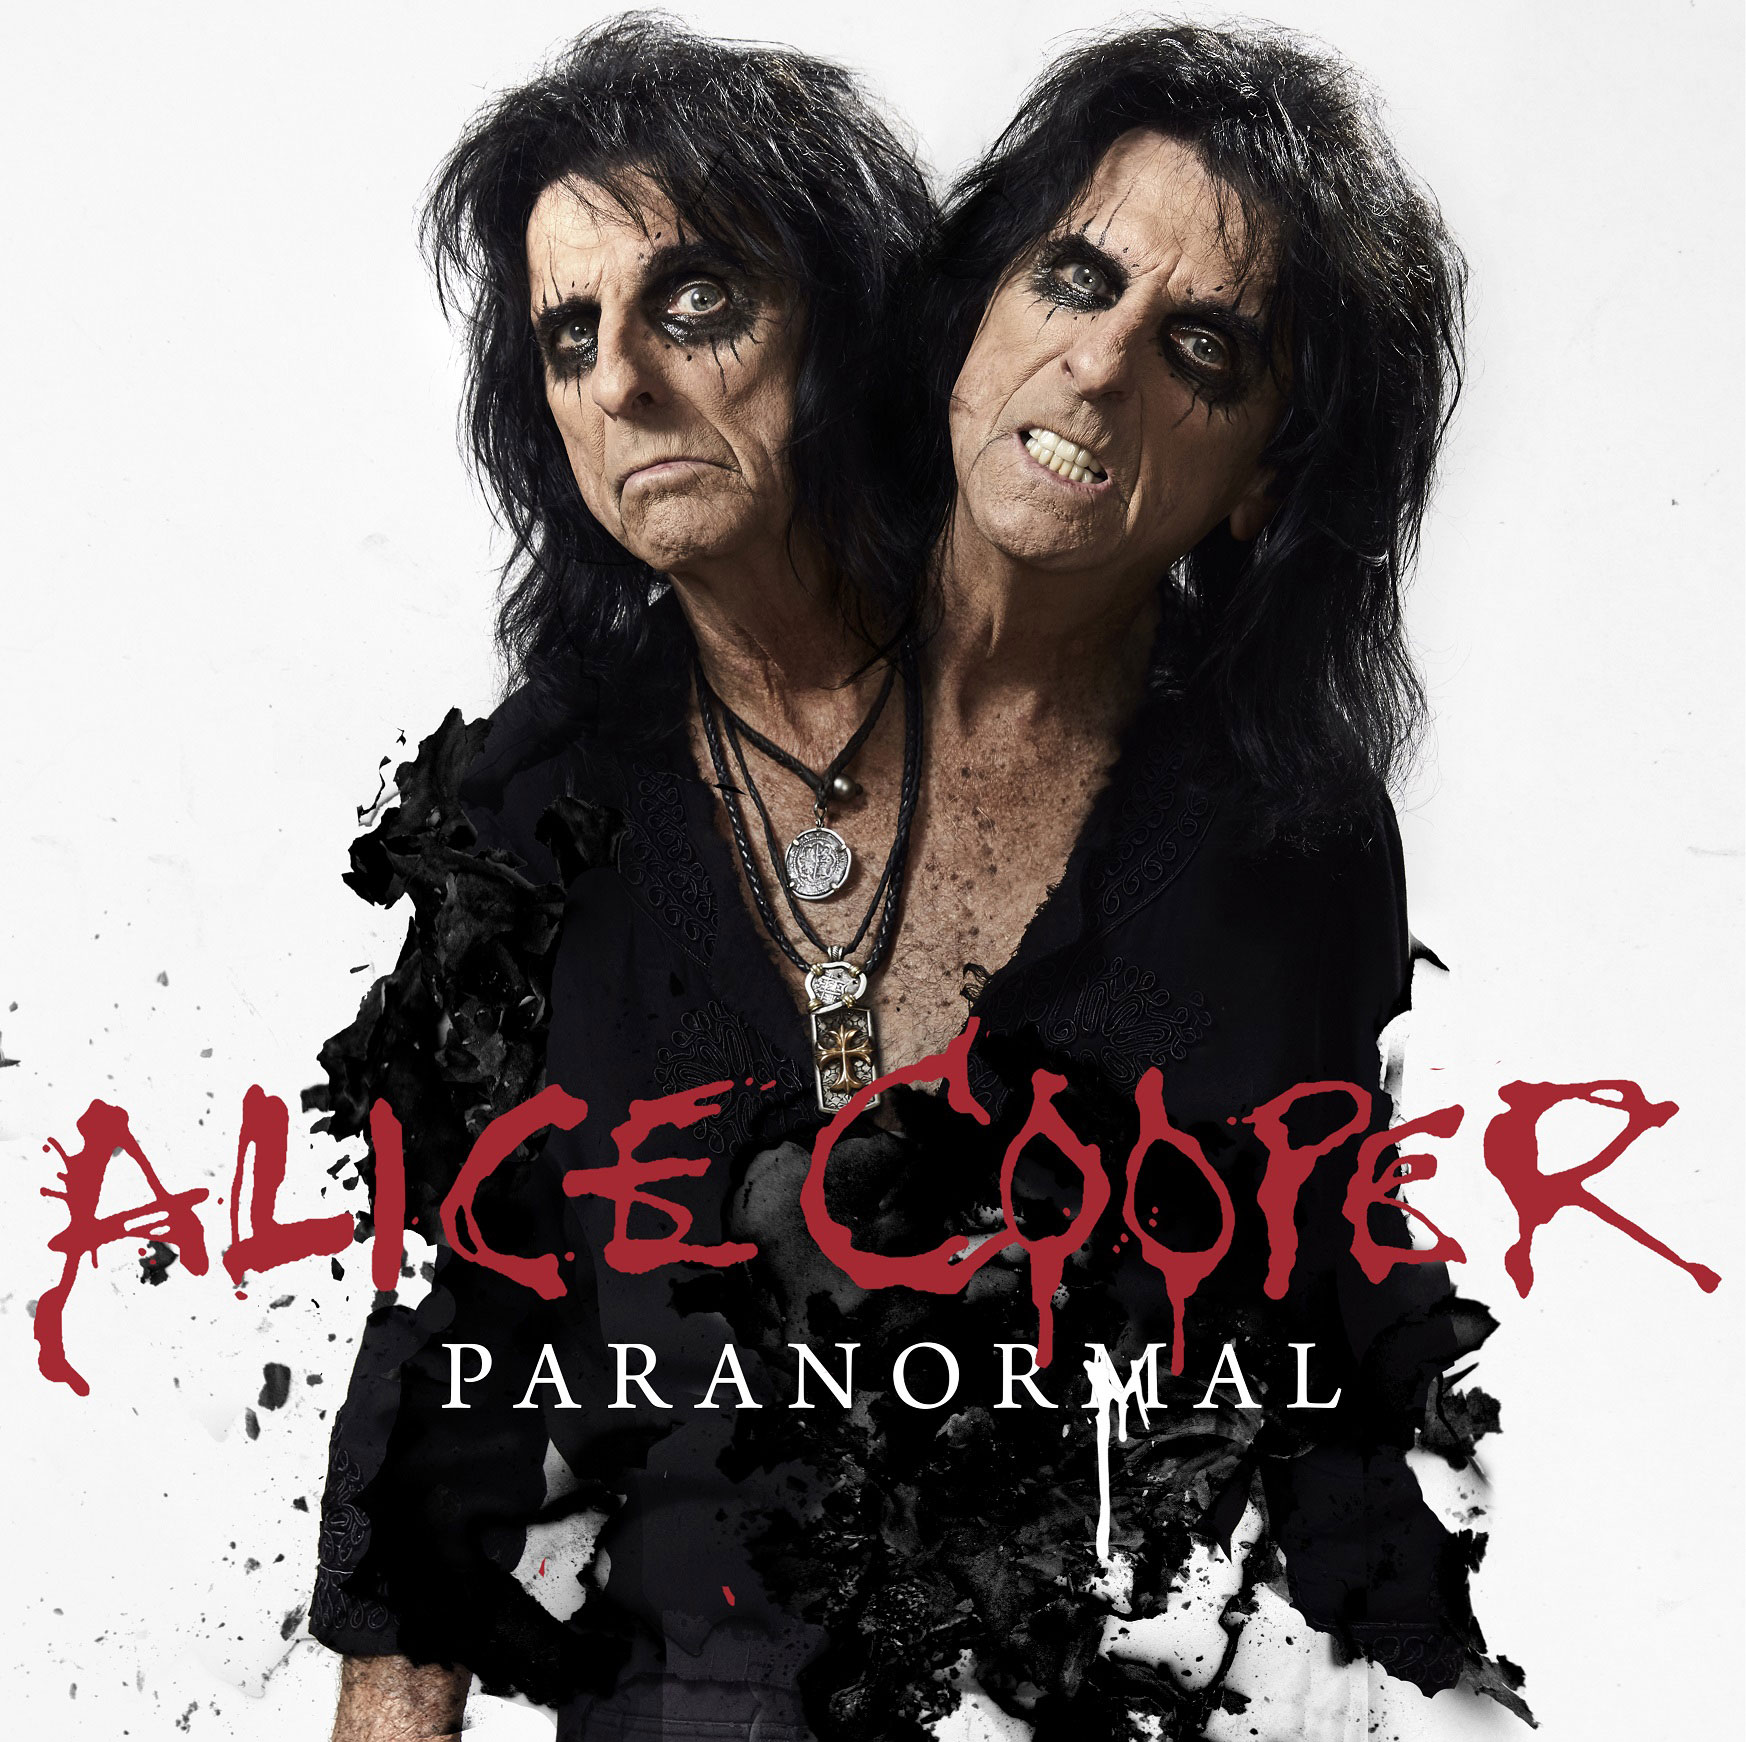 Bonus LP:Studio Recordings with the Original Alice Cooper Band1. Genuine American Girl2. You And All Of Your FriendsLive in Columbus with the current Alice Cooper band3. No More Mr. Nice Guy4. Under My Wheels5. Billion Dollar Babies6. Feed My Frankenstein7. Only Woman Bleed8. School's Out